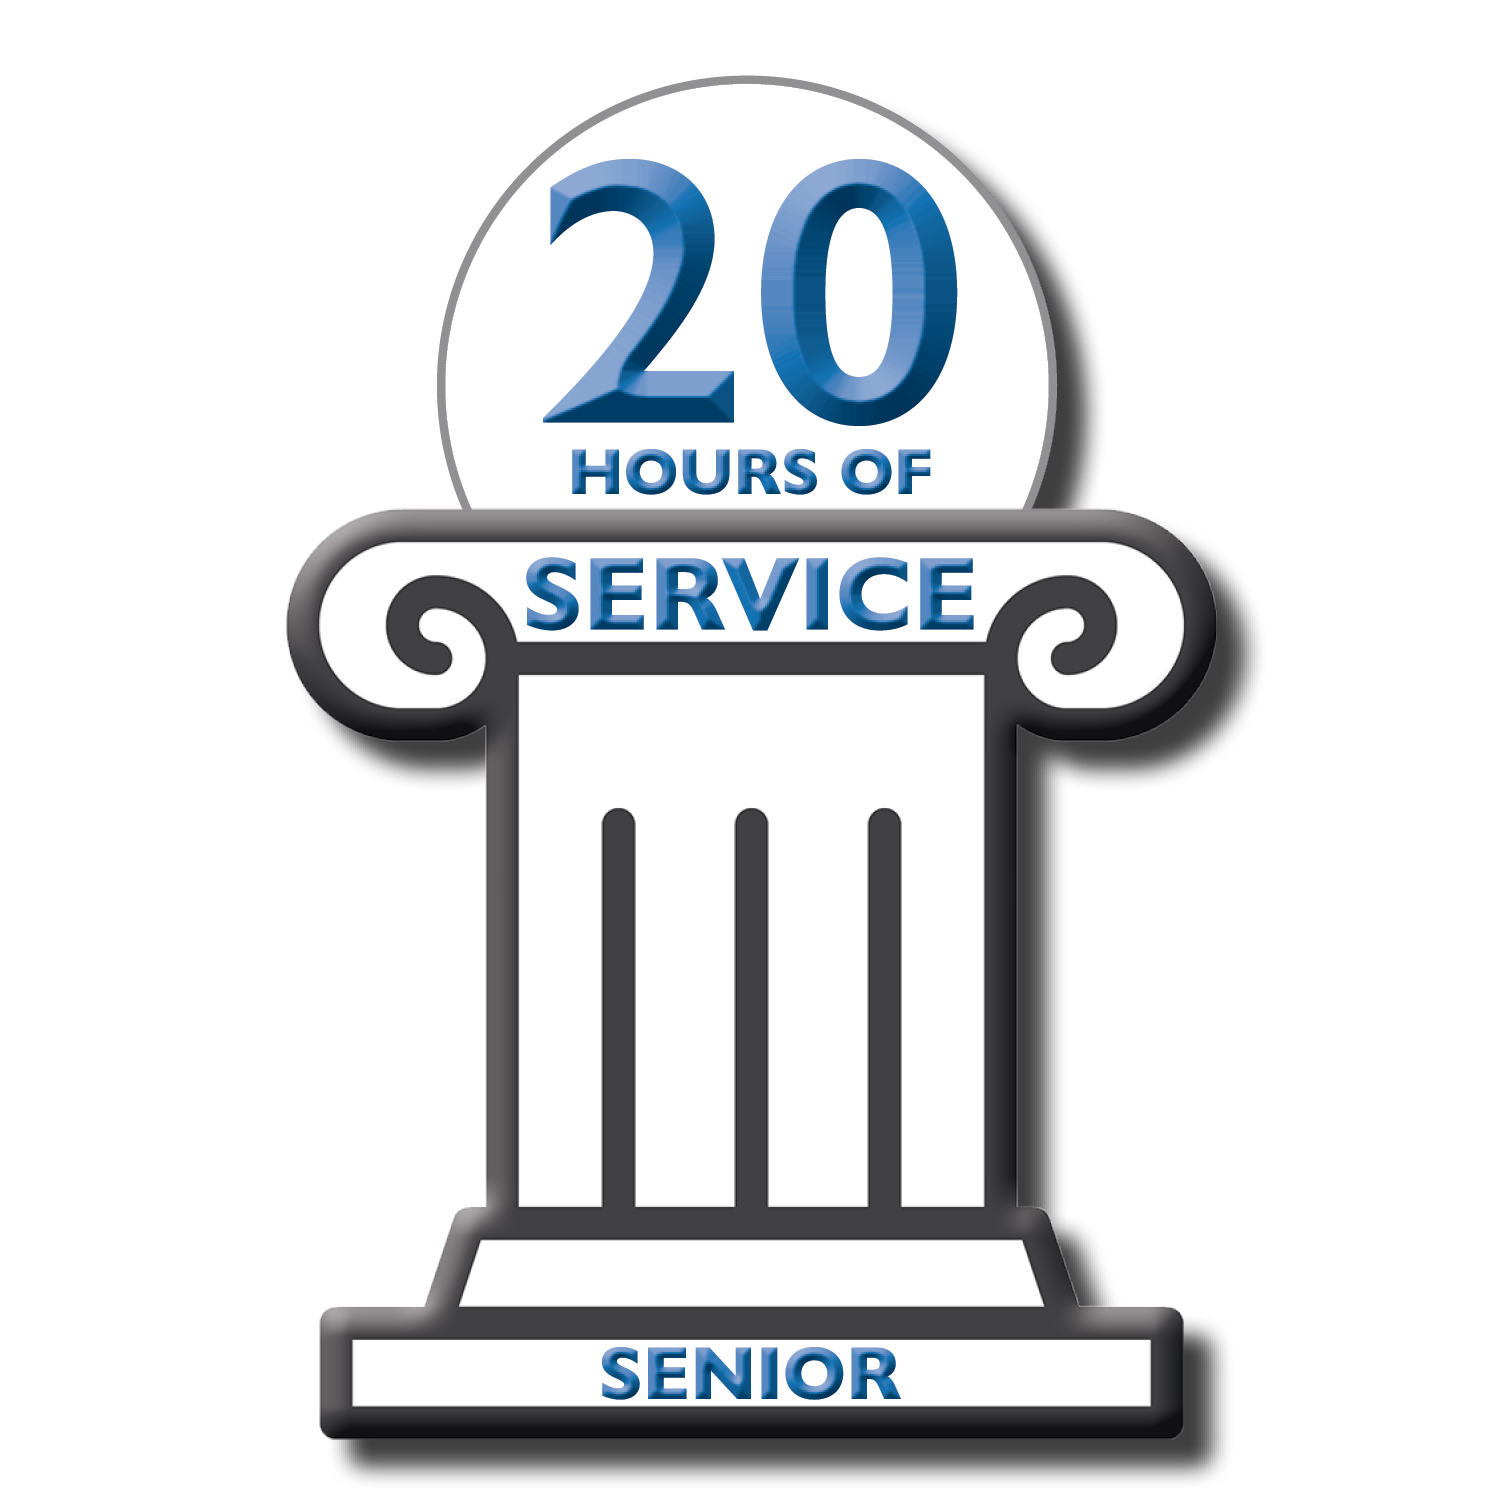 20 hours of service